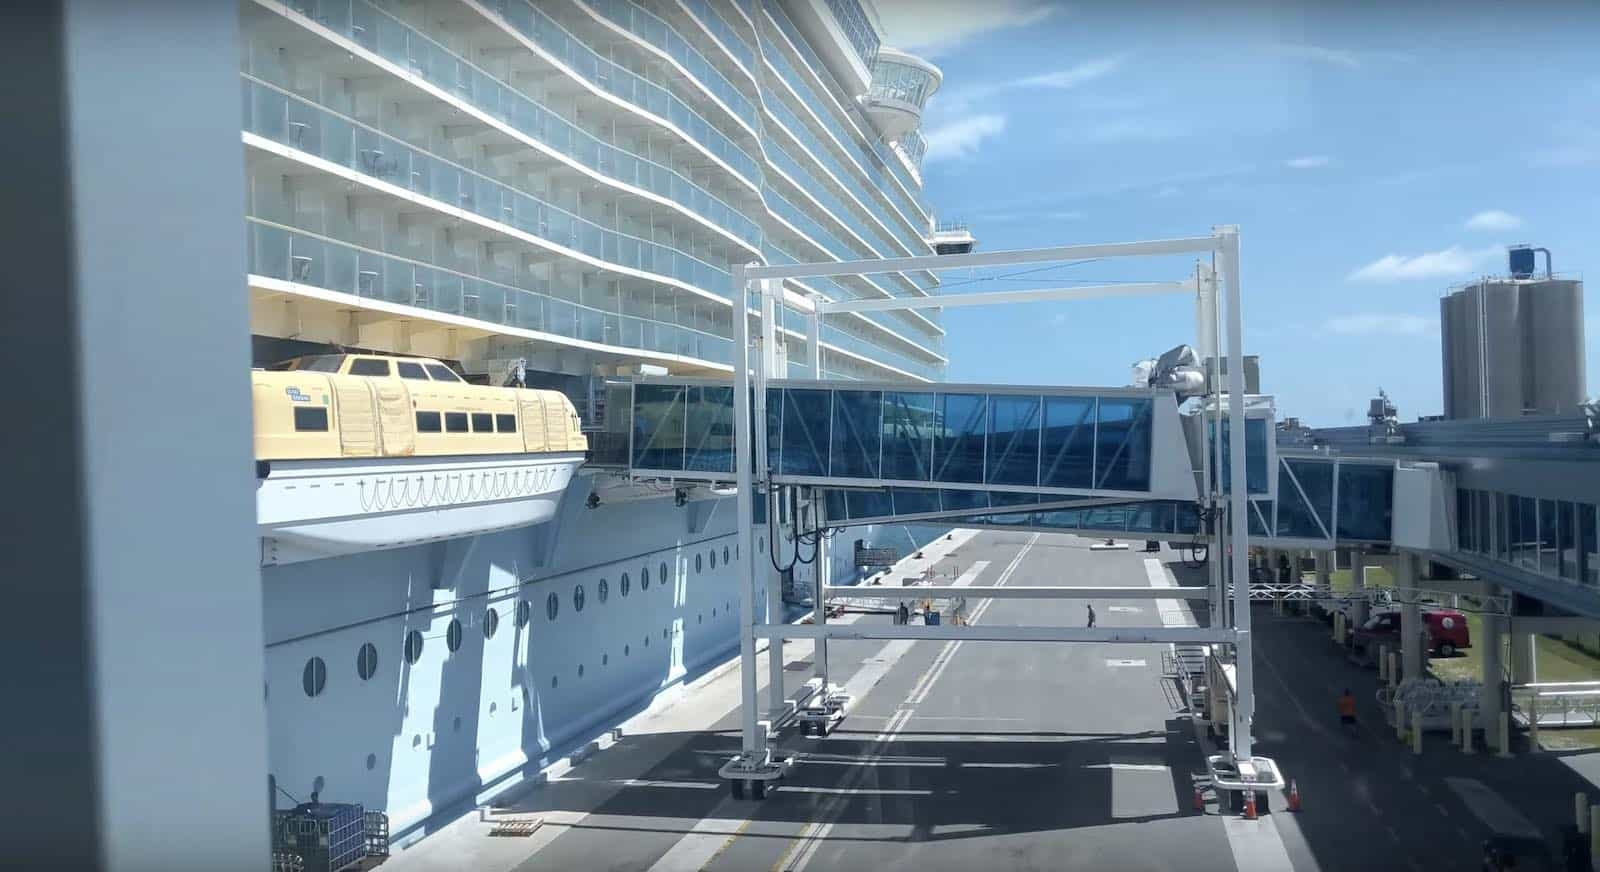 Oasis of the Seas in Port Canaveral FL